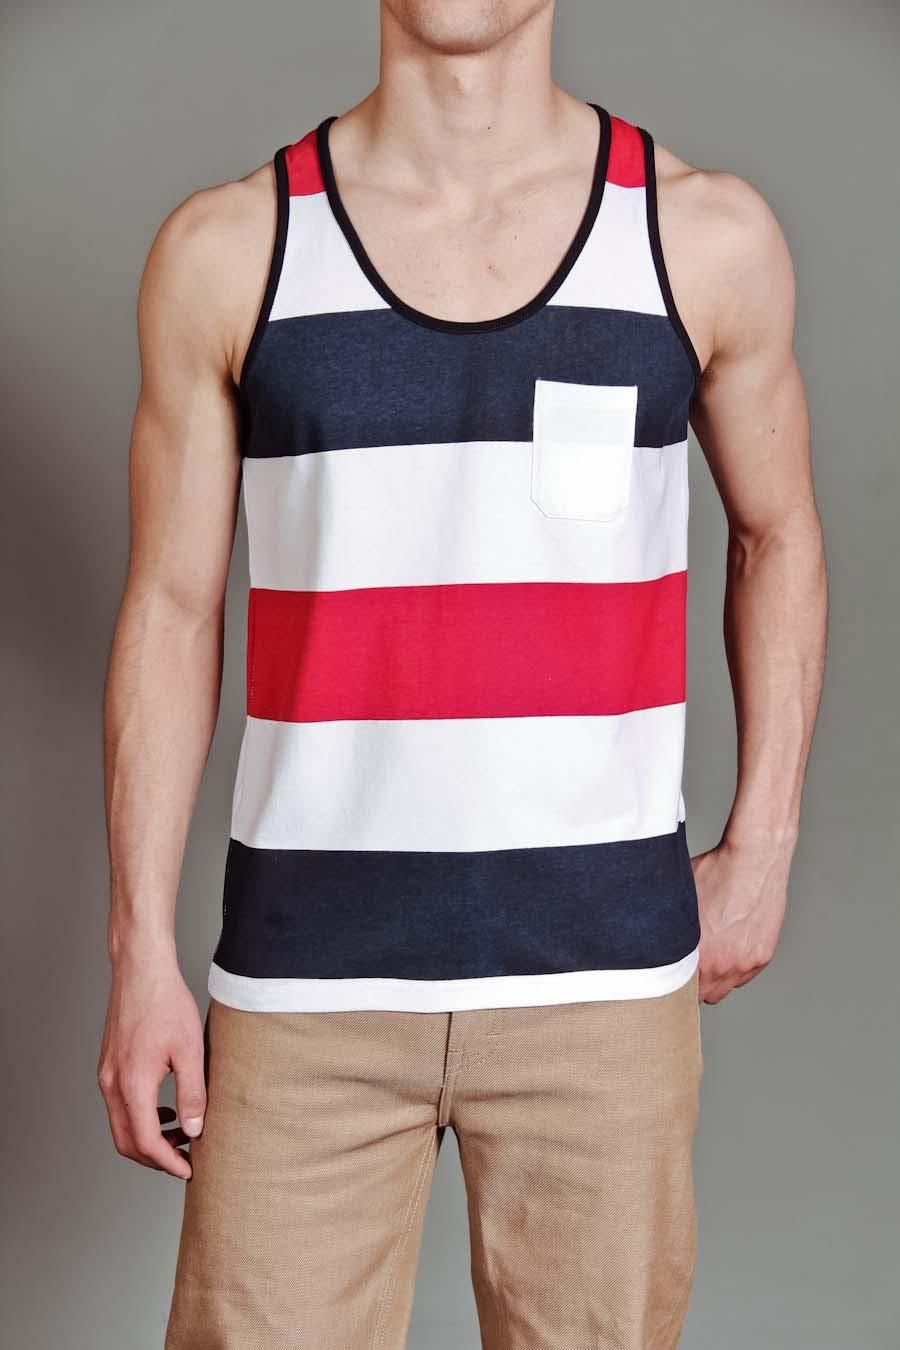 762275b59815a7 GOODALE STRIPED TANK TOP. JackThreads - Striped Tank Top Mens Sleeveless  Shirts ...